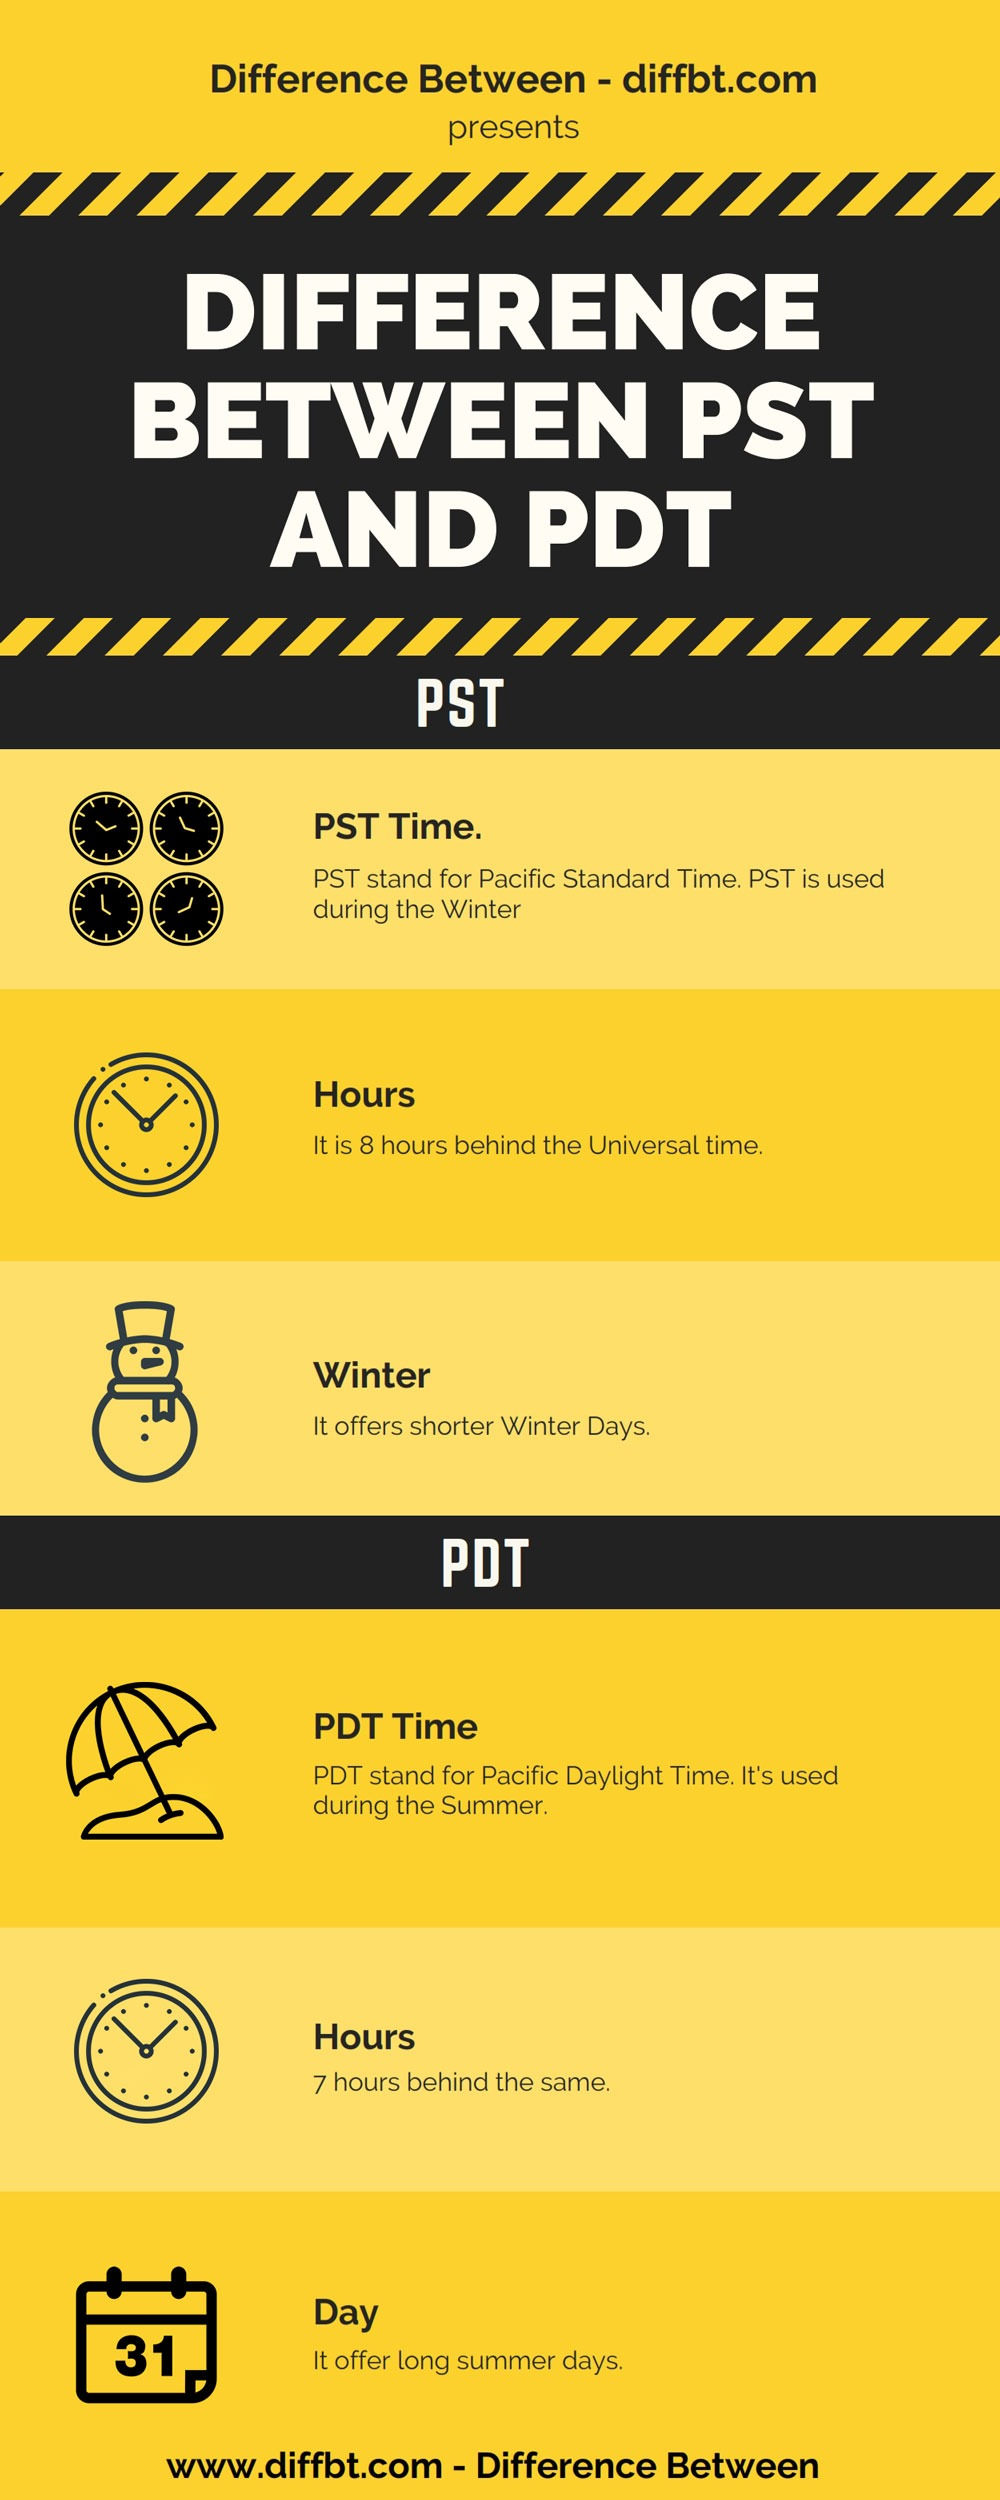 Difference Between PST and PDT - PST vs PDT